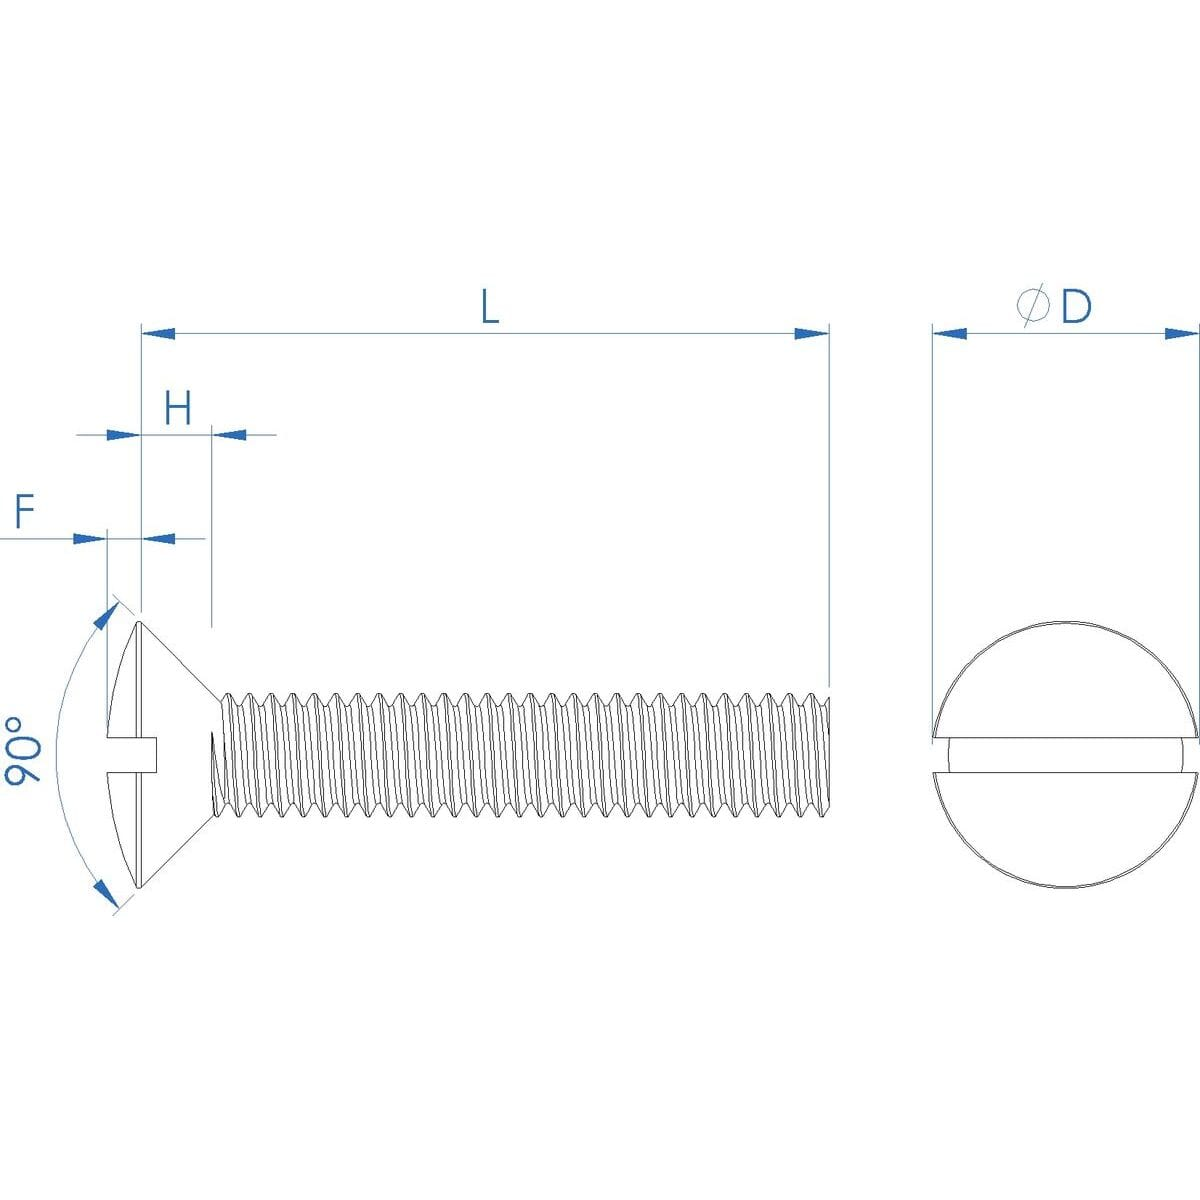 M4 x 12mm Raised Slotted Countersunk Screws (DIN 964) - Stainless Steel (A2) Drawing